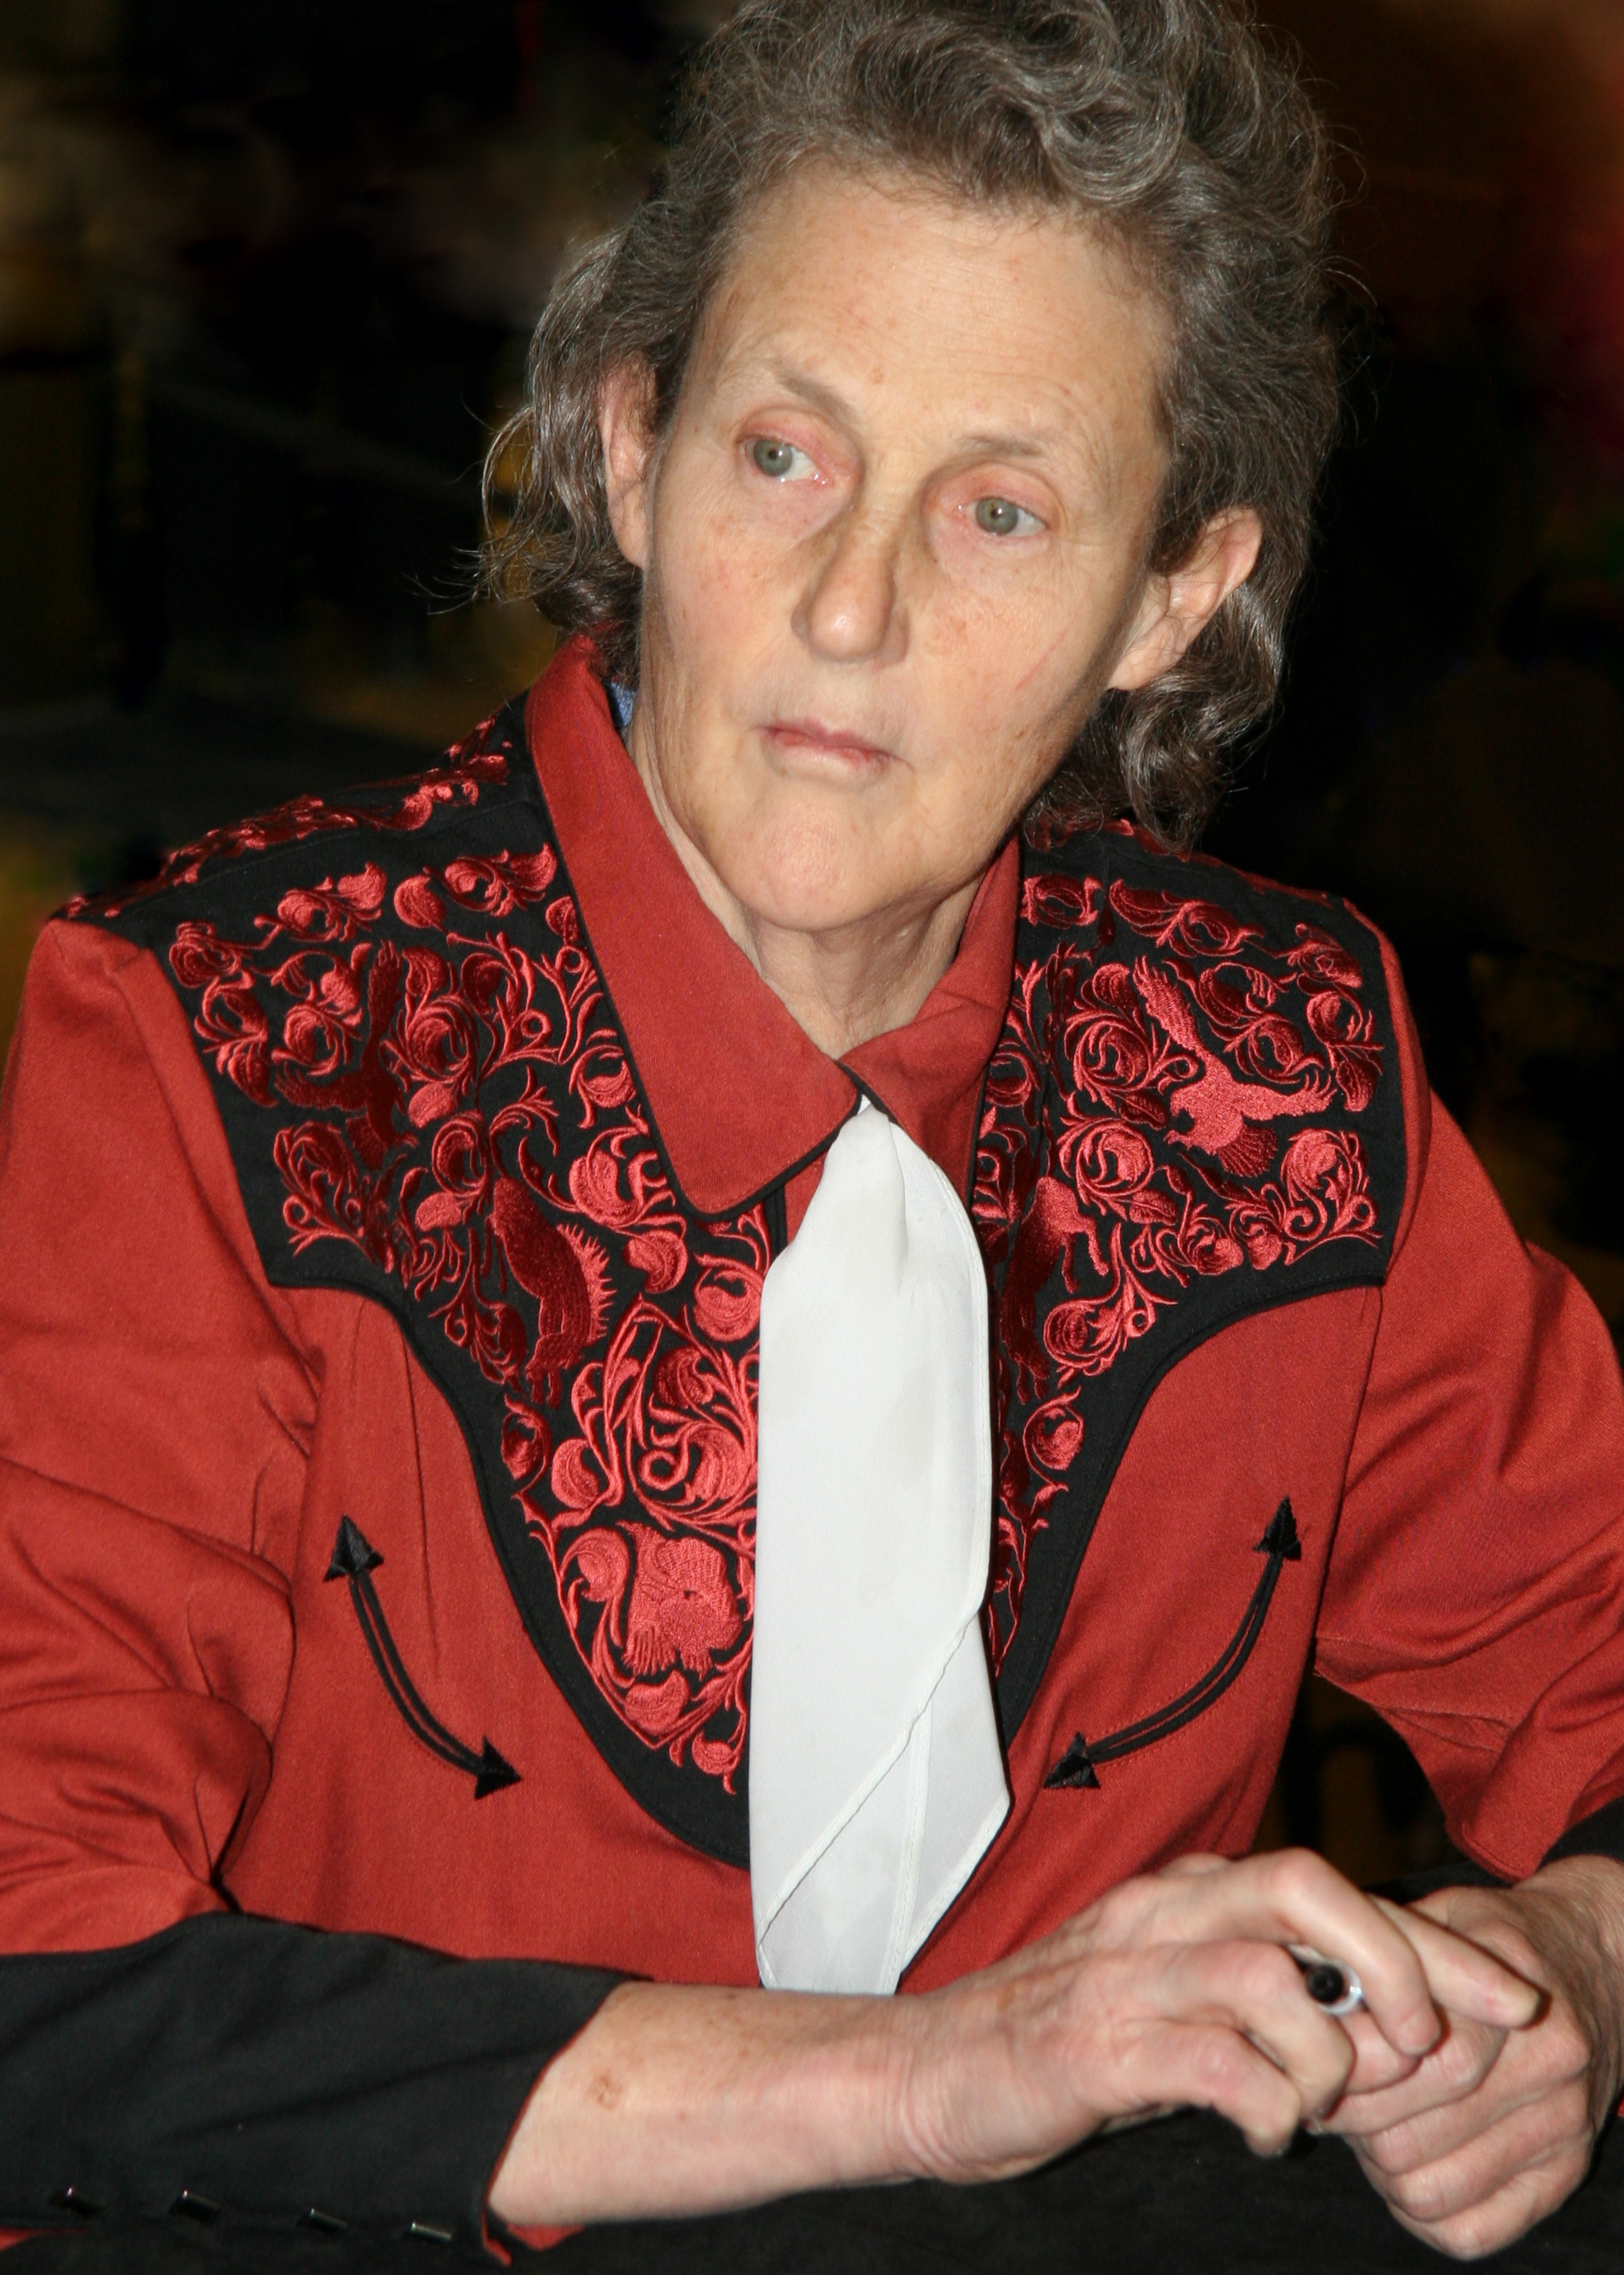 http://upload.wikimedia.org/wikipedia/commons/4/47/TempleGrandin.jpg